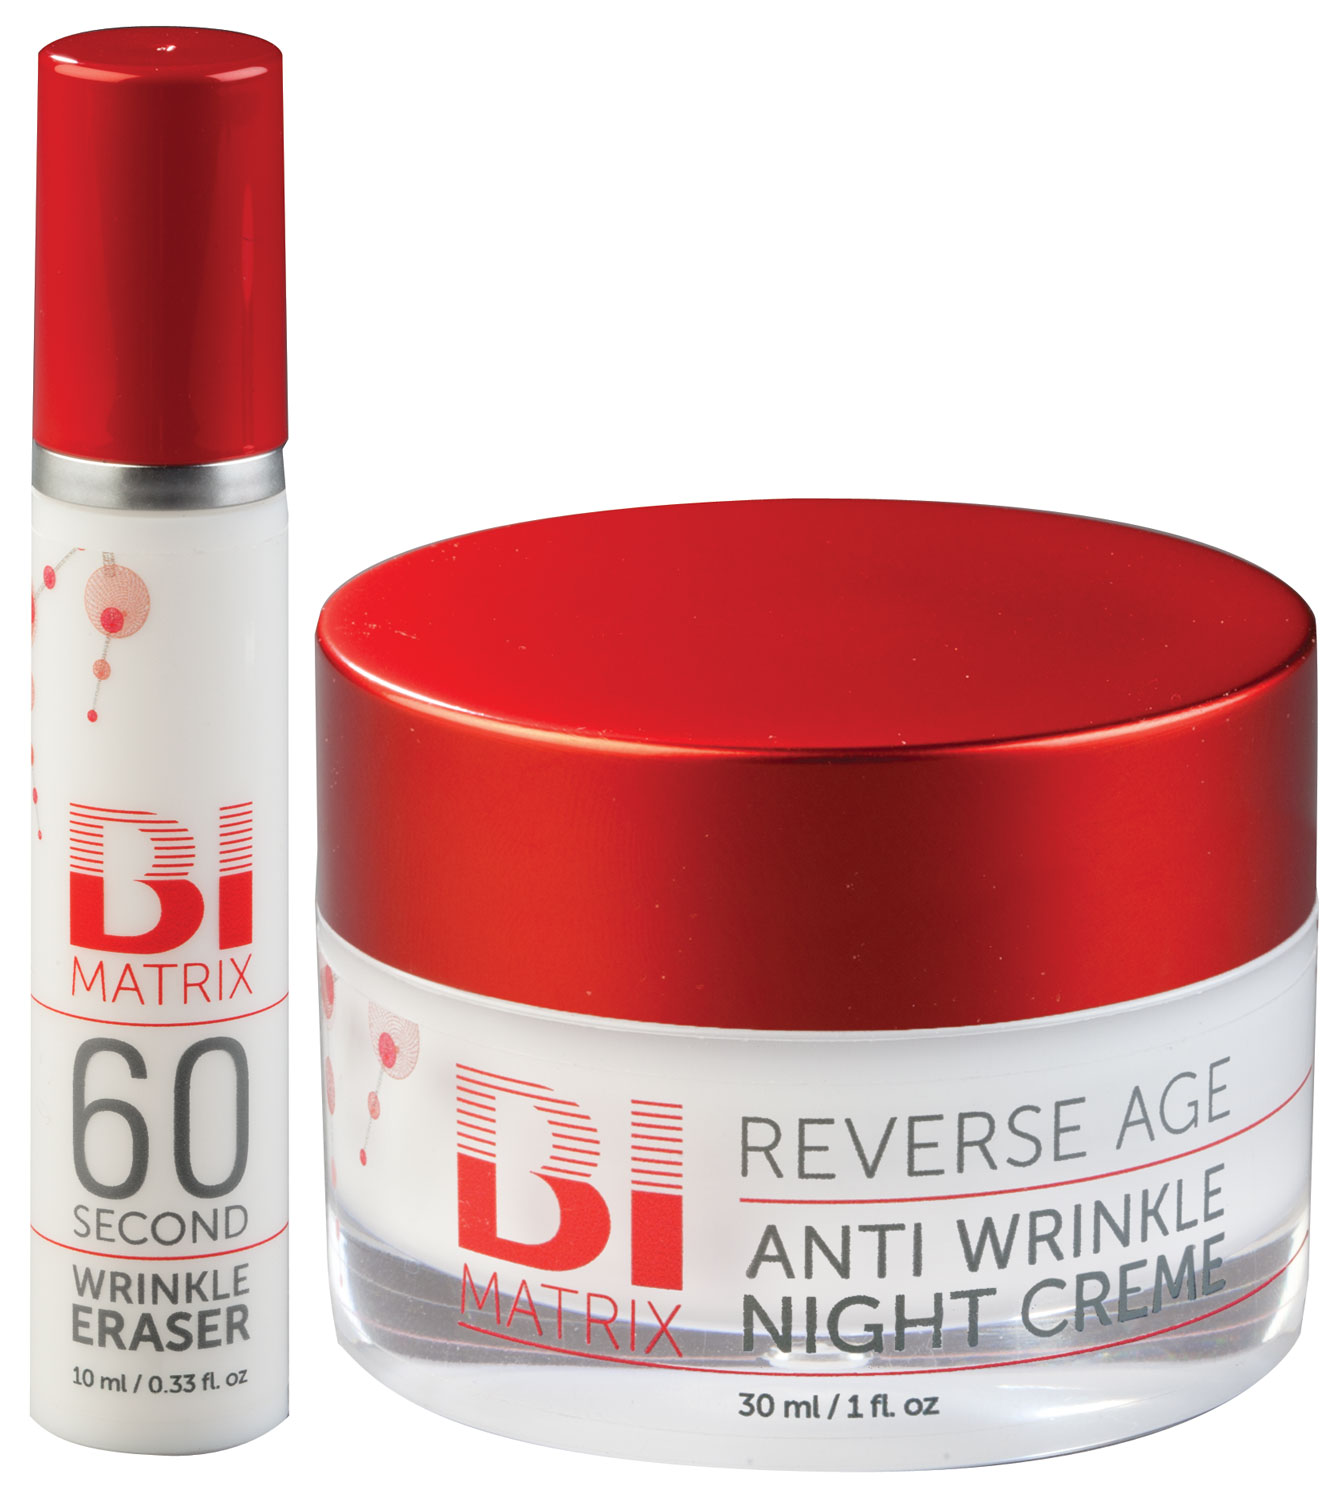 Bi-Matrix 60 Second Wrinkle Eraser with Free Night Cream